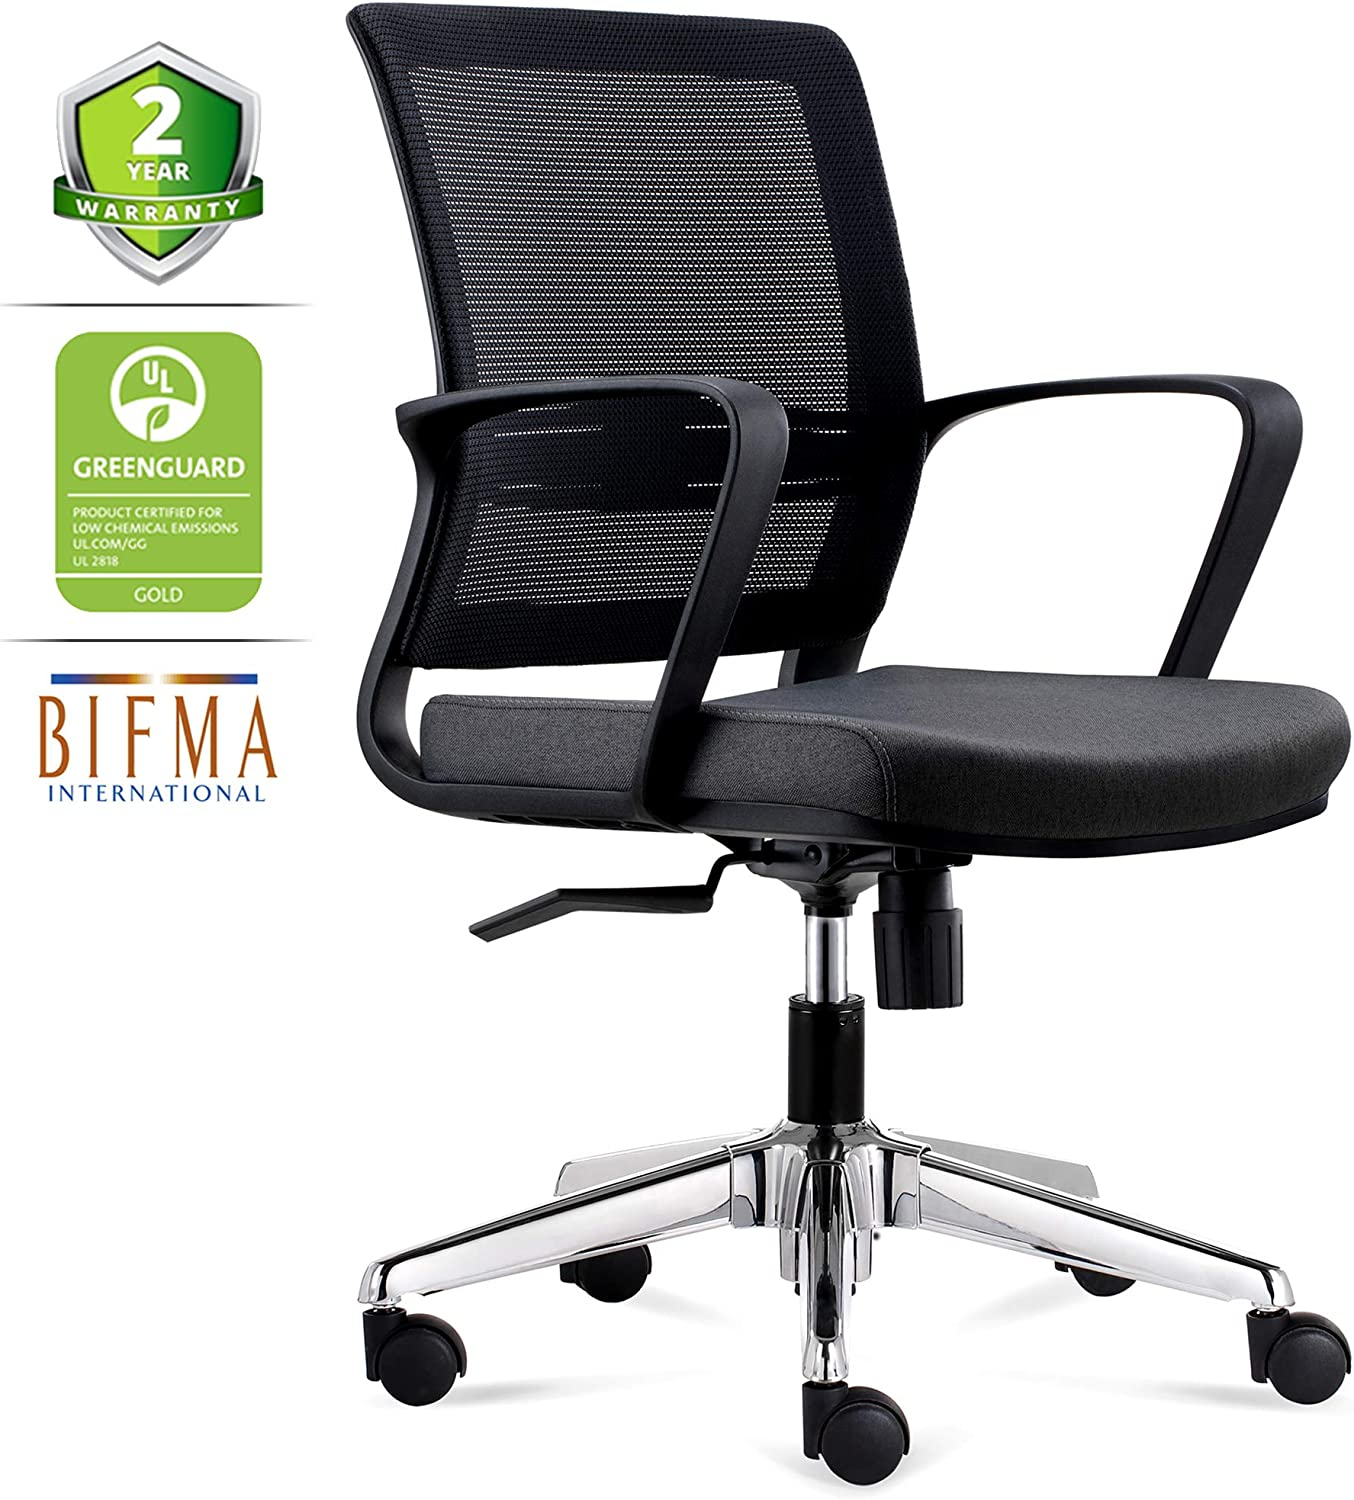 CHAIRLIN Office Chair Comfortable Desk Chair Ergonomic Chair with Armrest Computer Chair Mid Back Task Chair with Lumbar Support Black